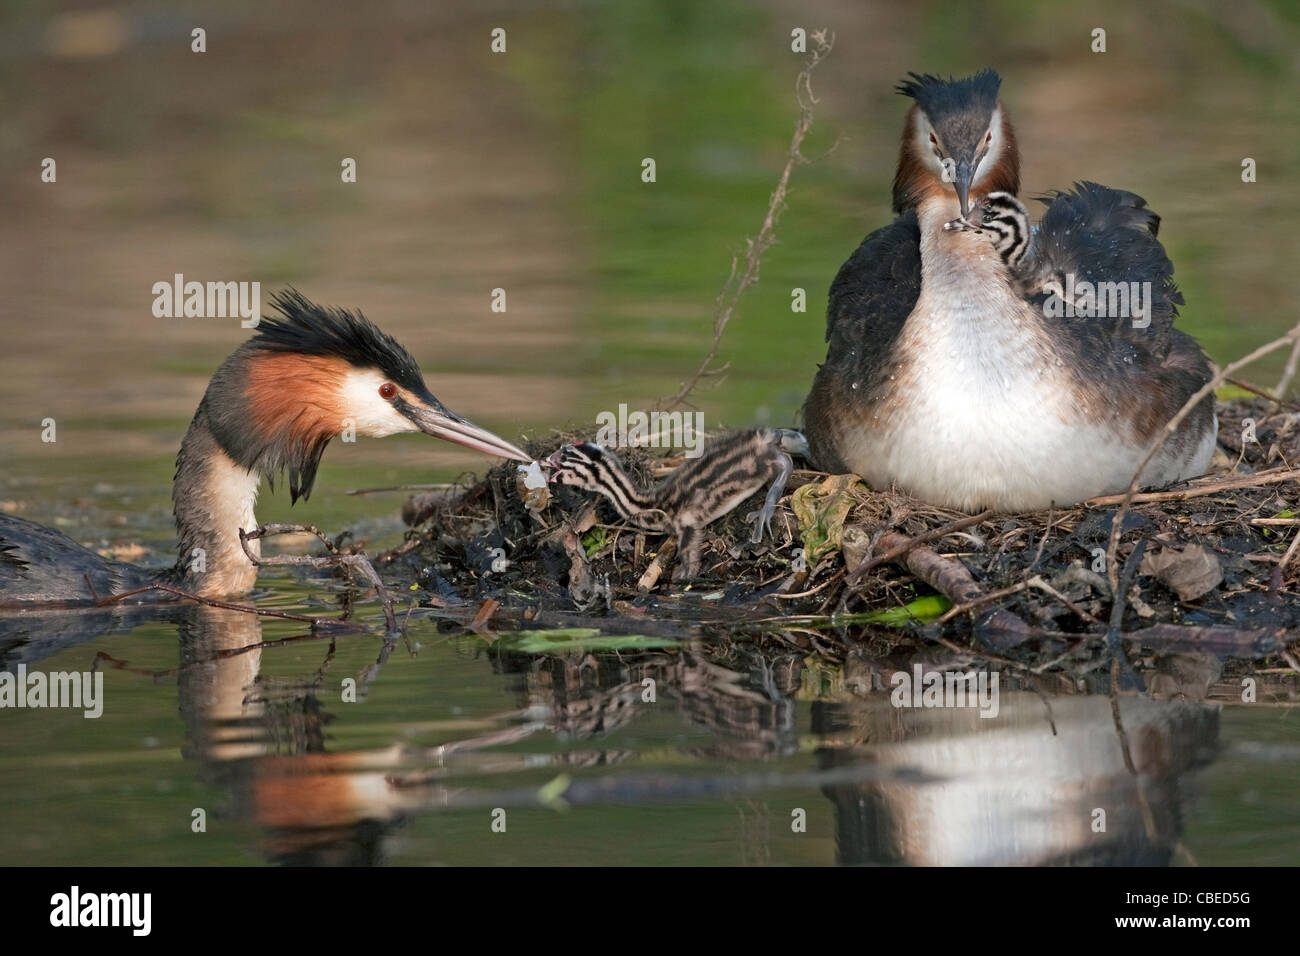 Great Crested Grebe (Podiceps cristatus). Adult feeding chicks on nest. - Stock Image